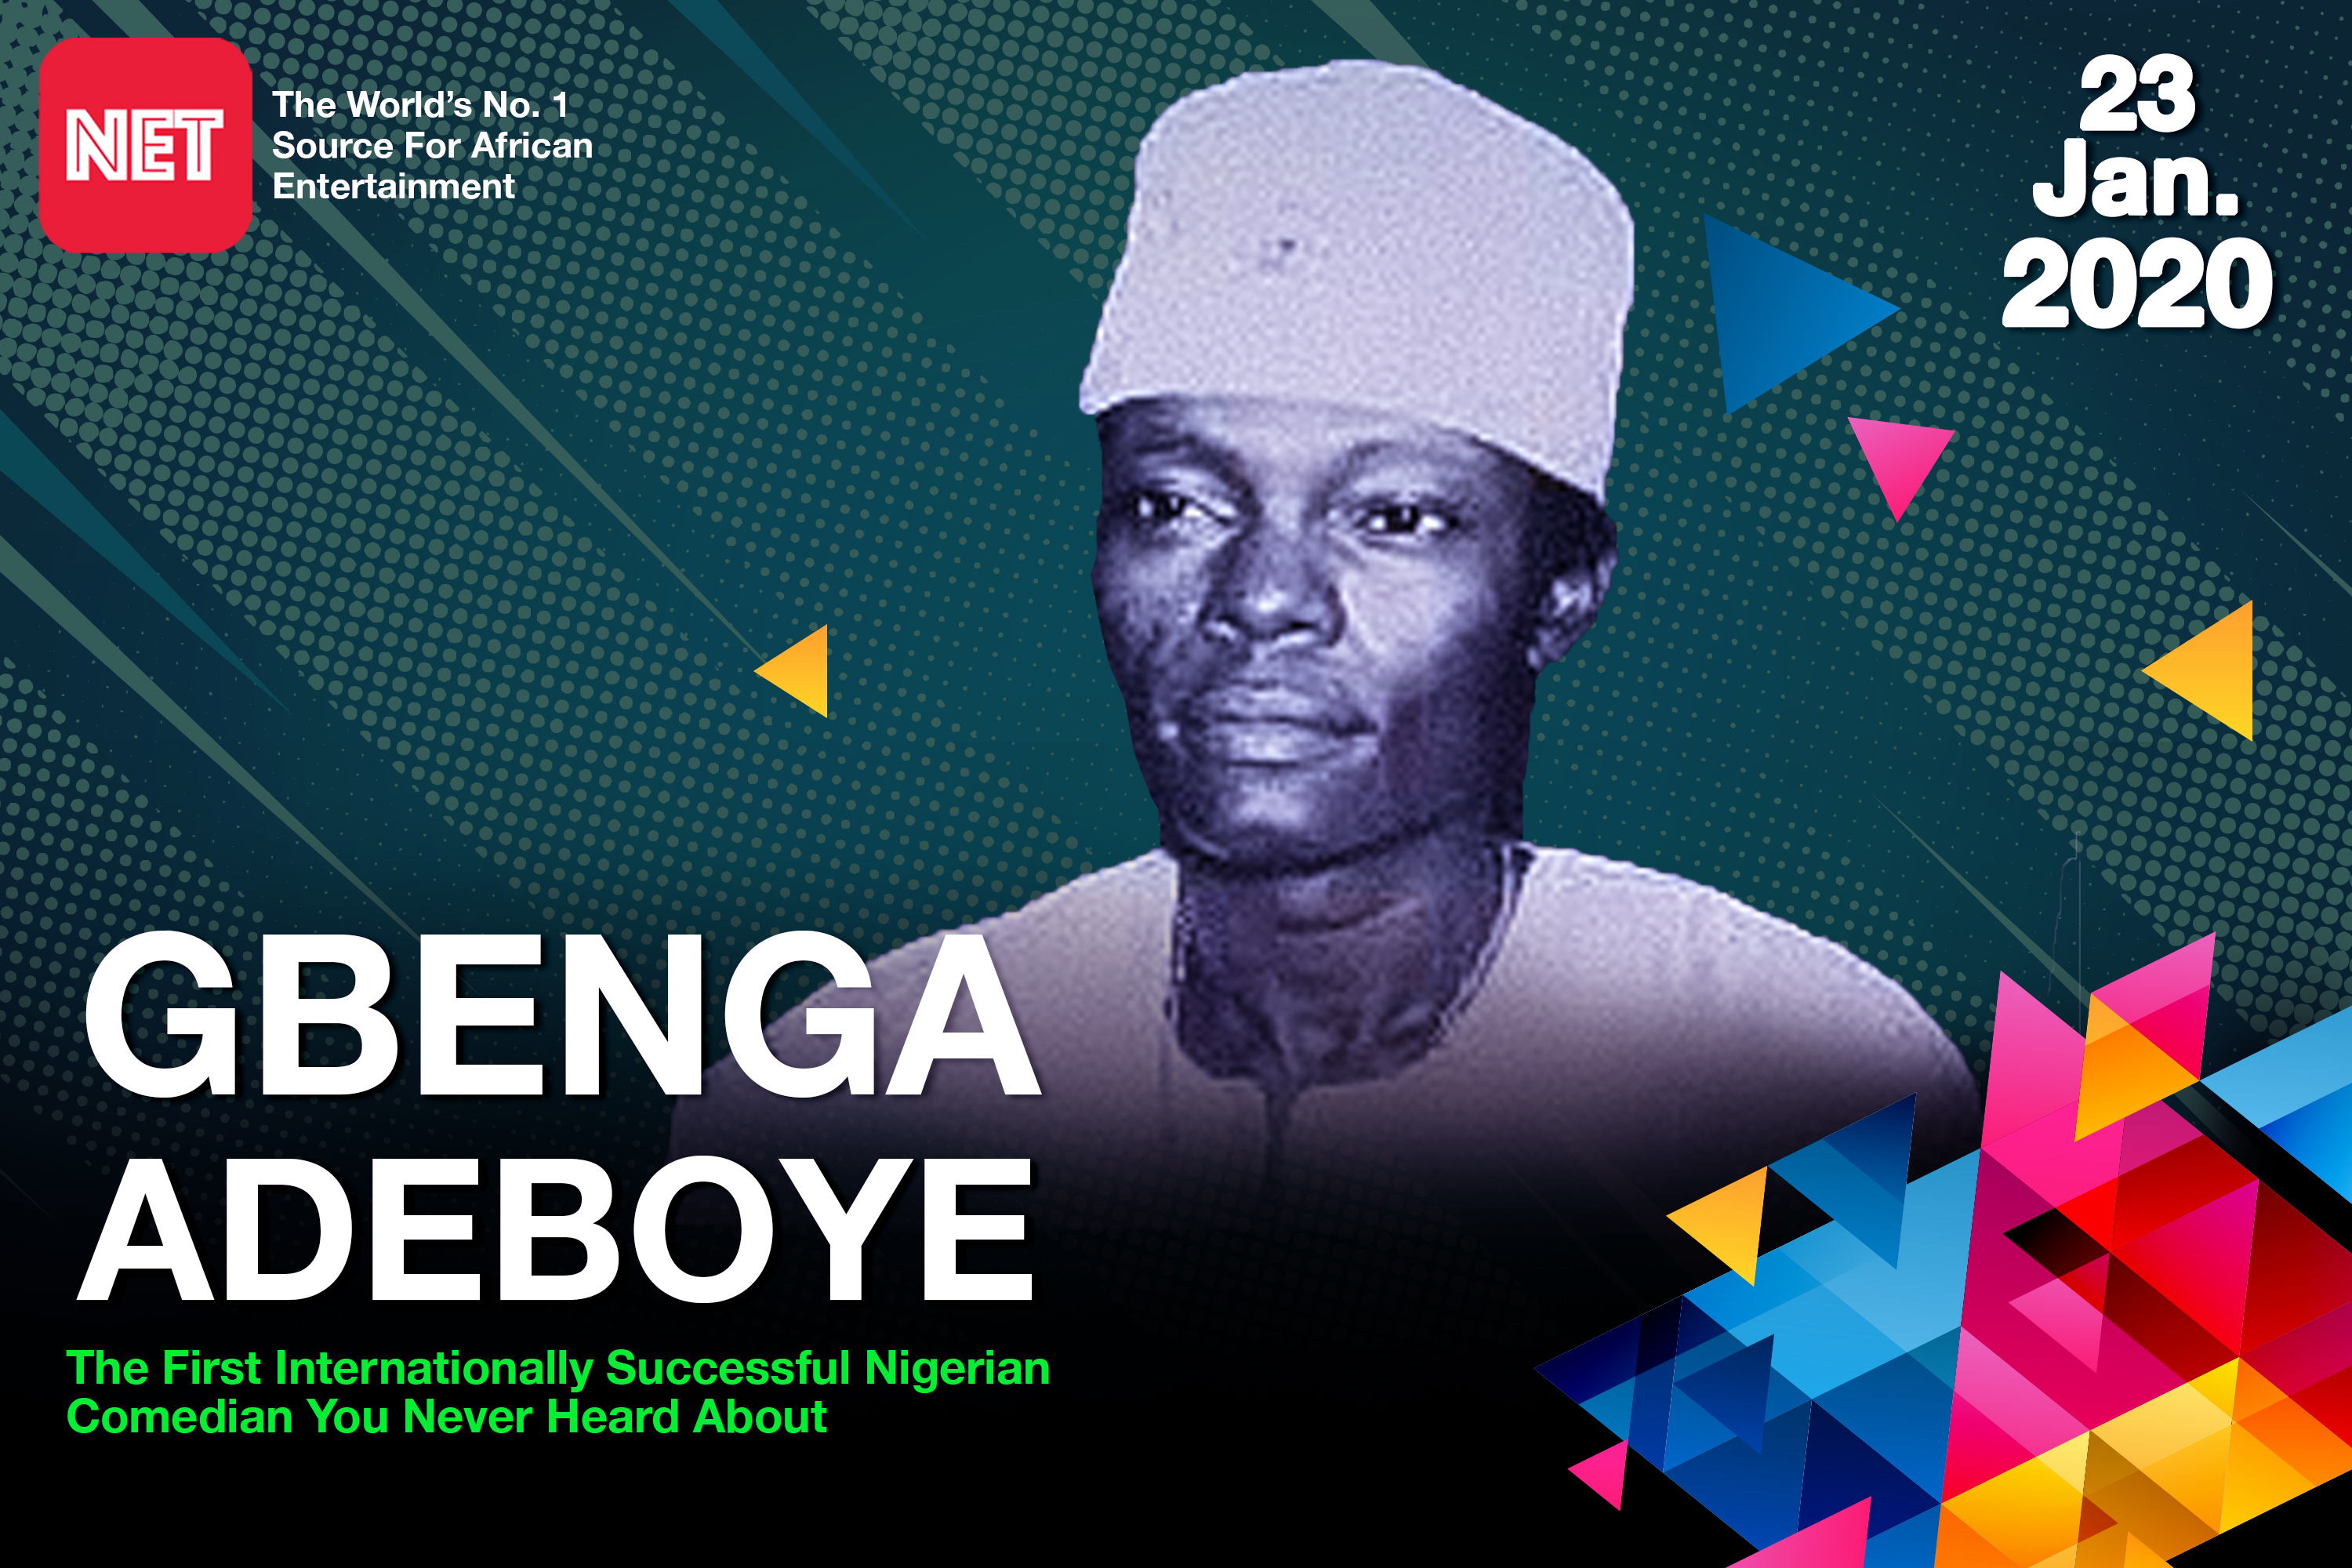 Gbenga Adeboye: The first internationally successful Nigerian comedian you never heard about